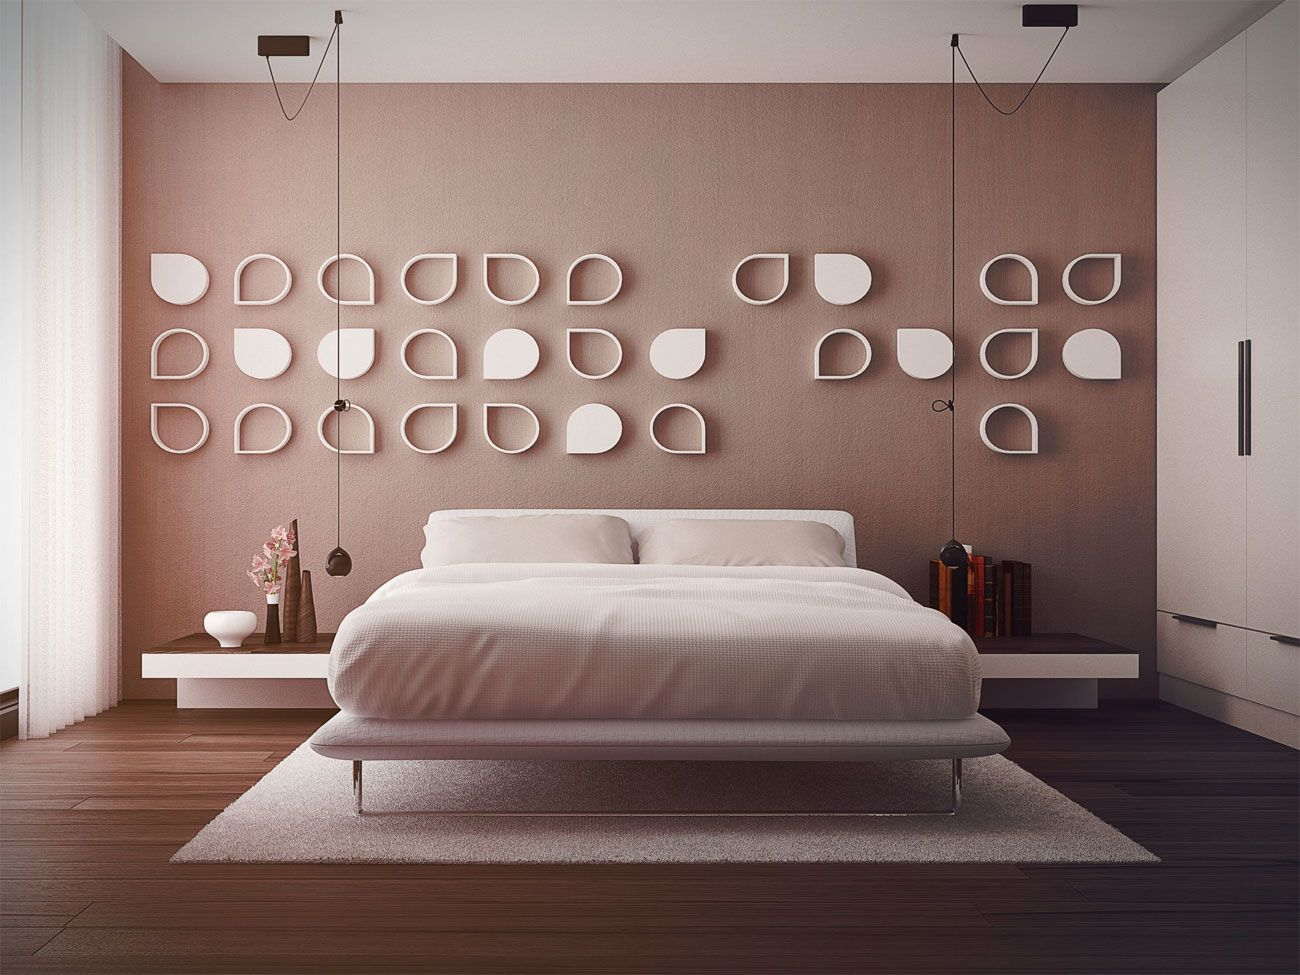 Loft bed ideas for low ceiling  ZZzzzzz  Inspiration déco  Pinterest  Pink bedroom design Pink